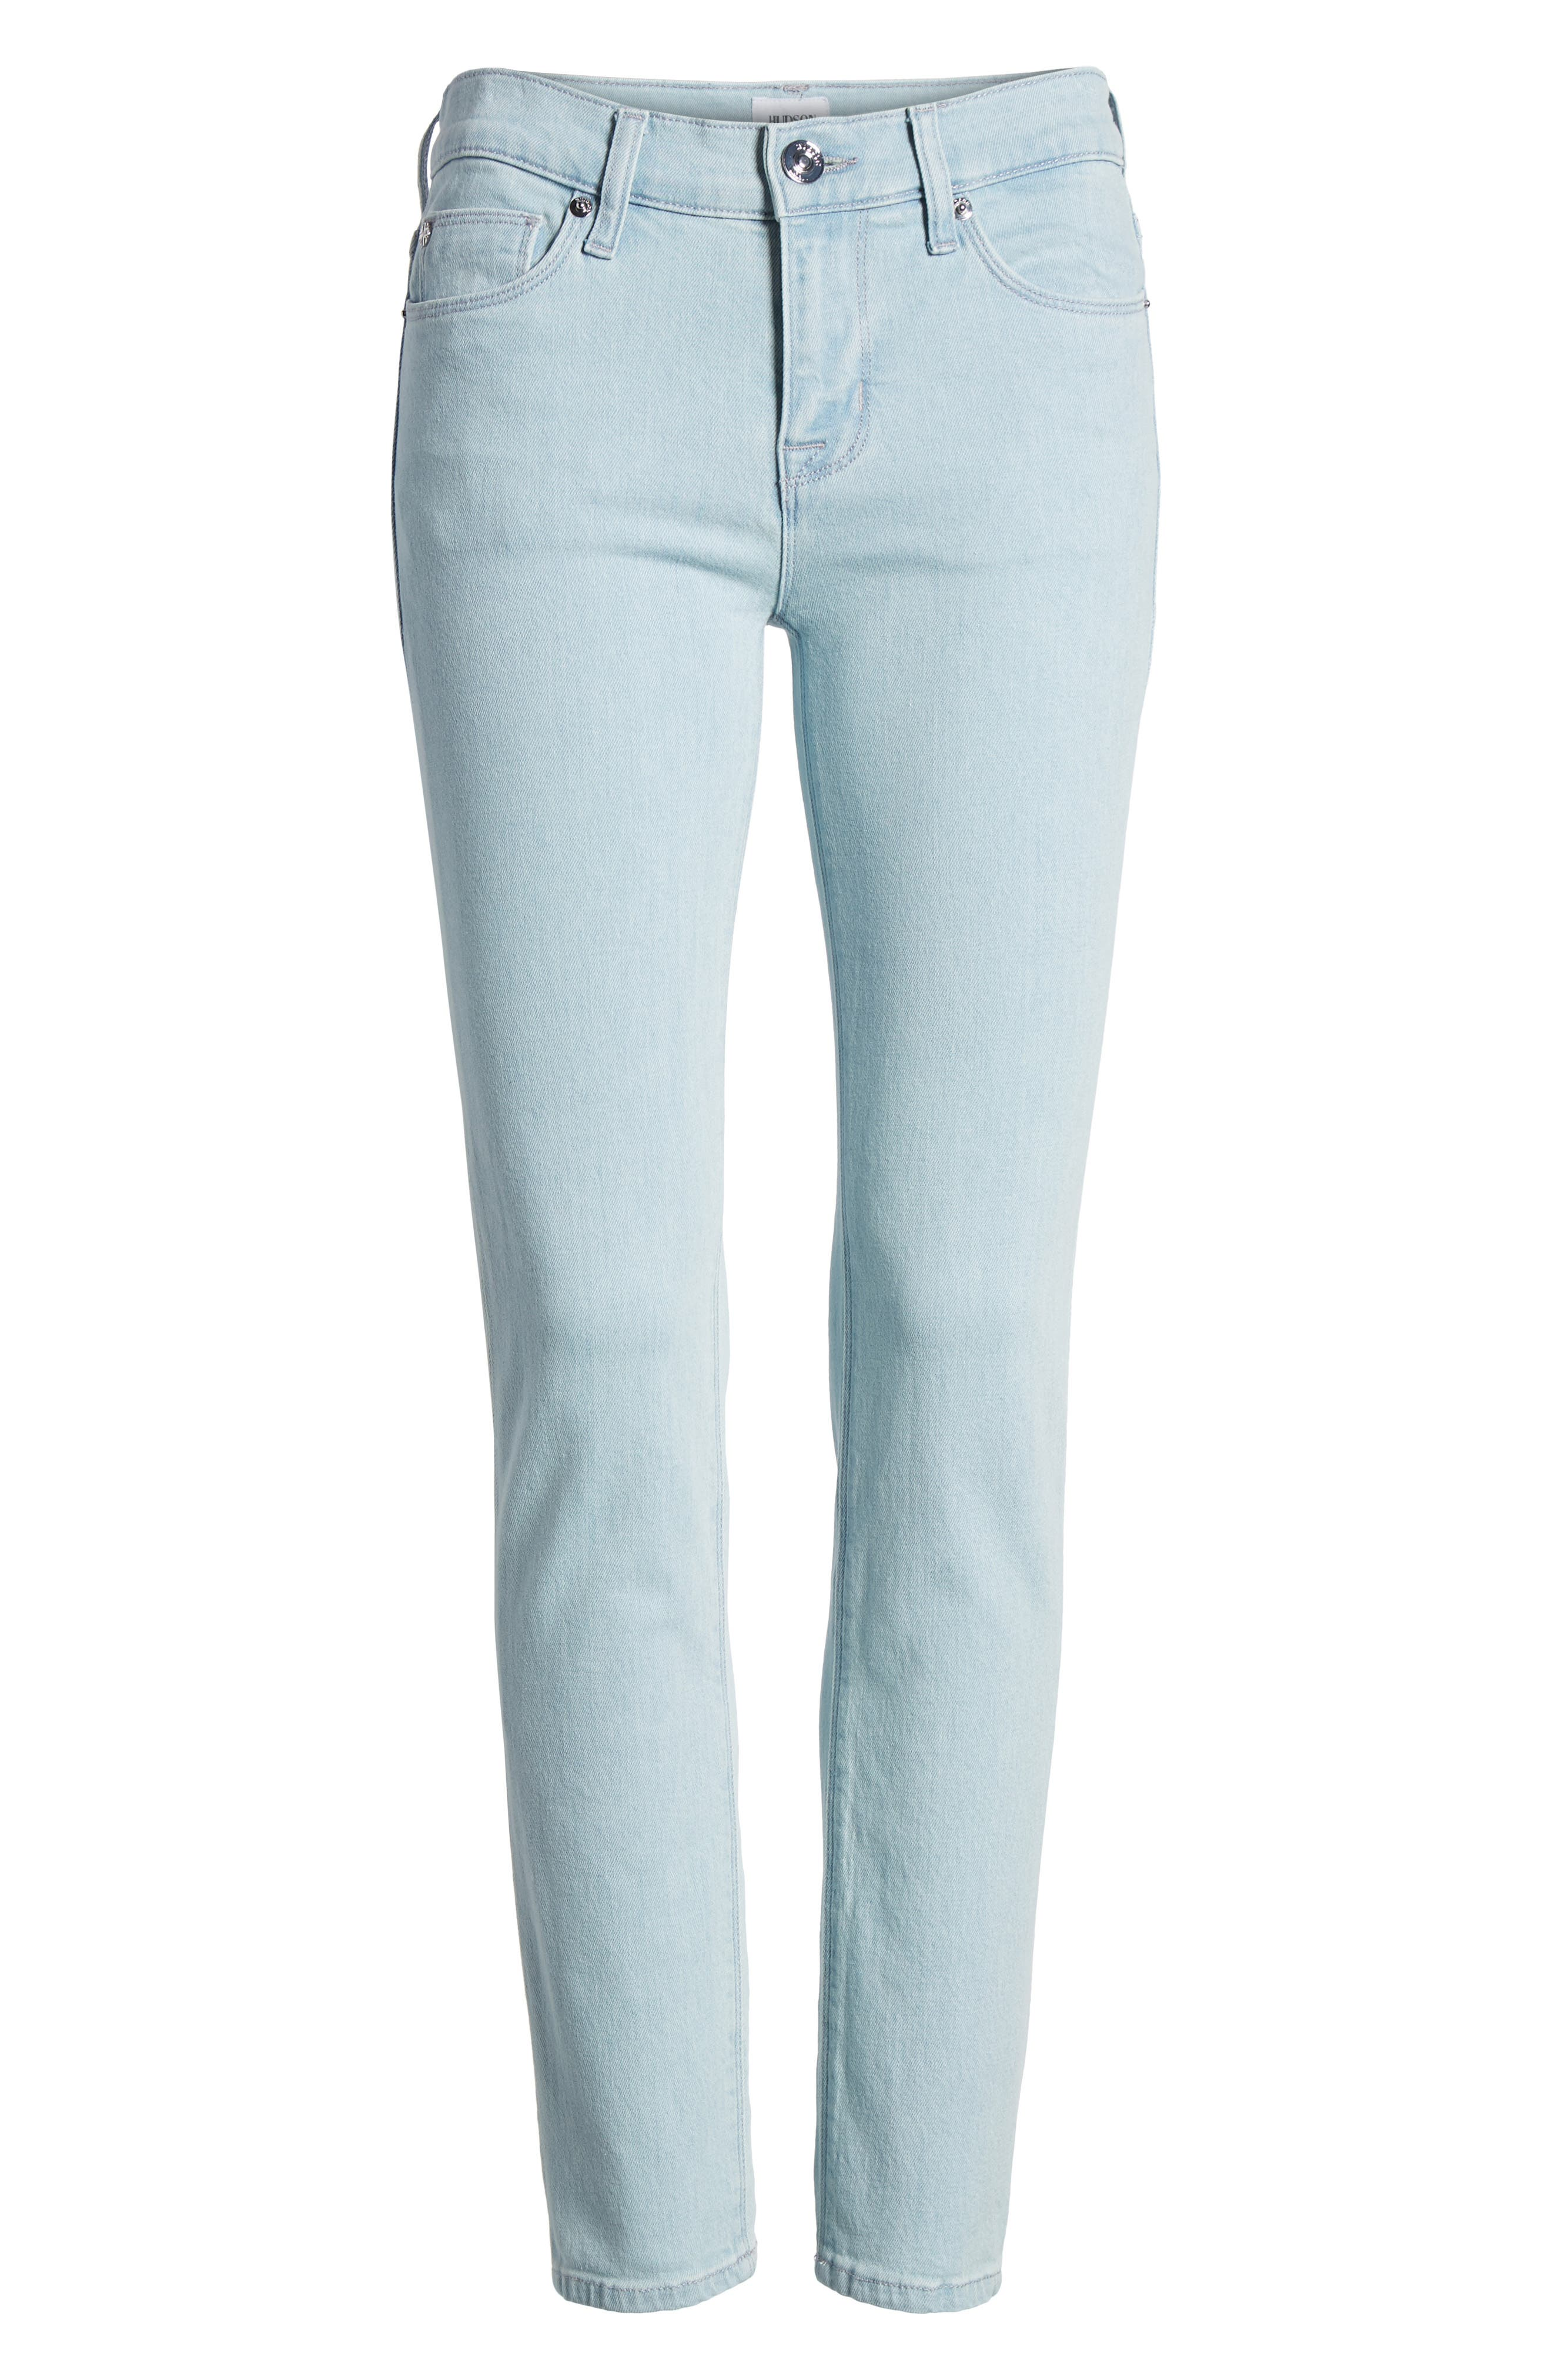 Tally Crop Skinny Jeans,                             Alternate thumbnail 7, color,                             363